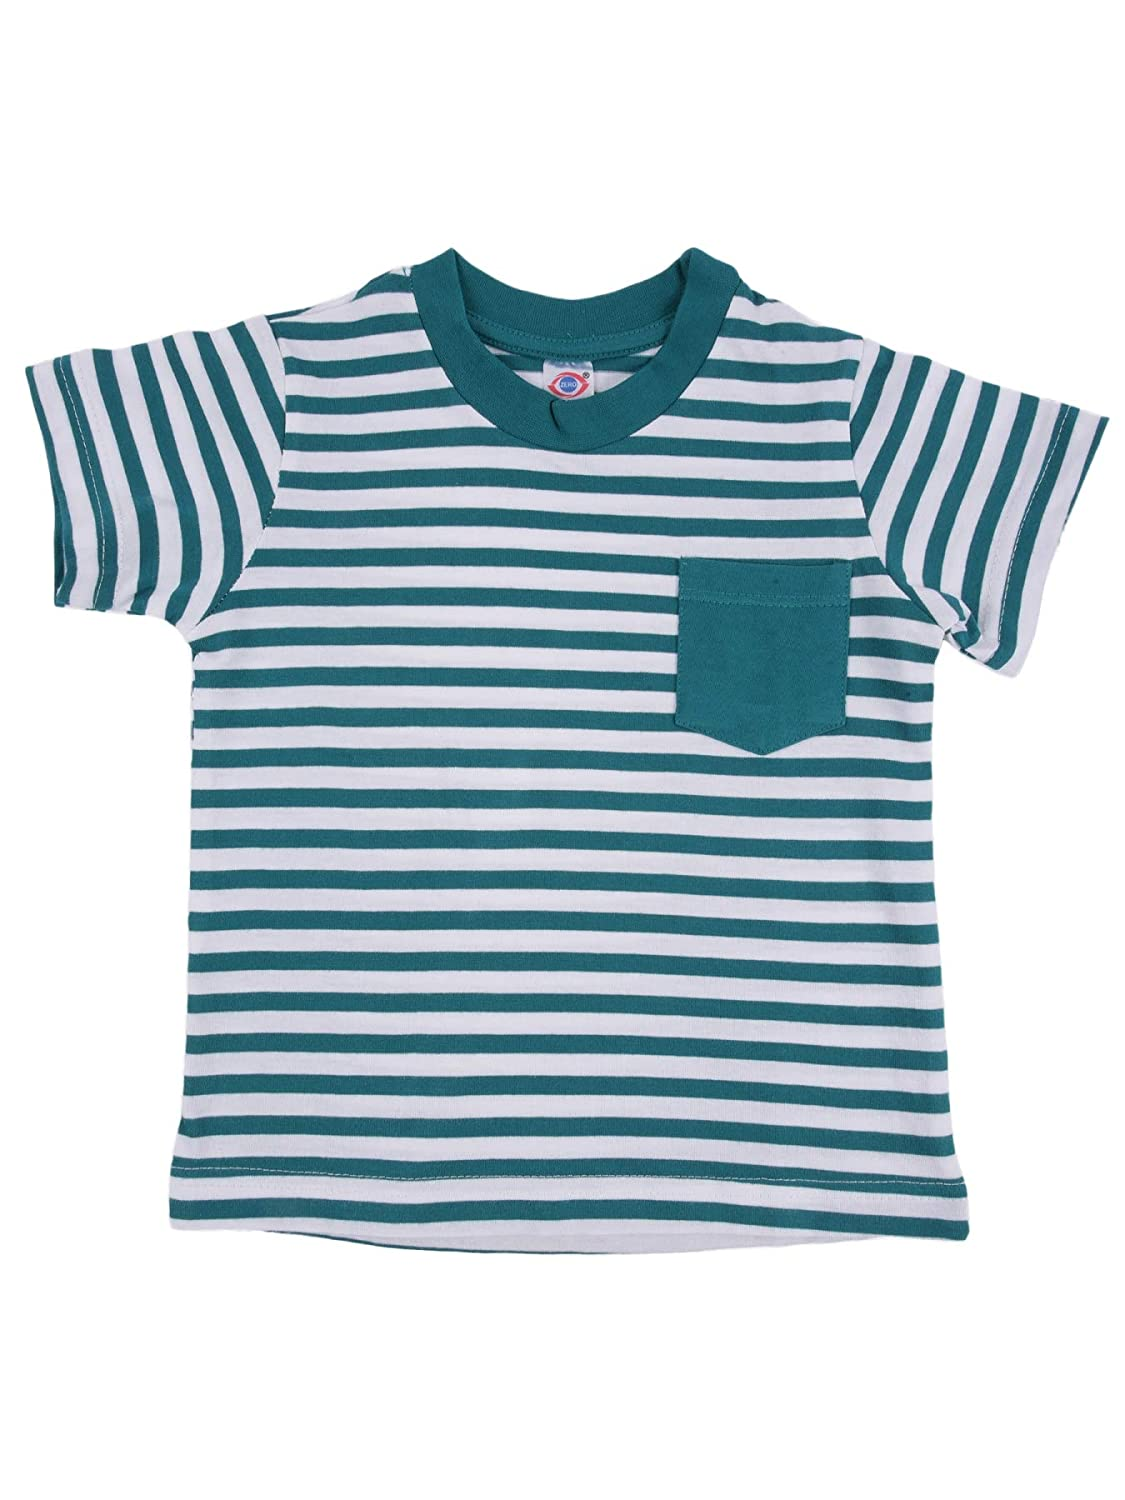 Half Sleeves T-Shirt- Stripes- Unisex- 100% Cotton